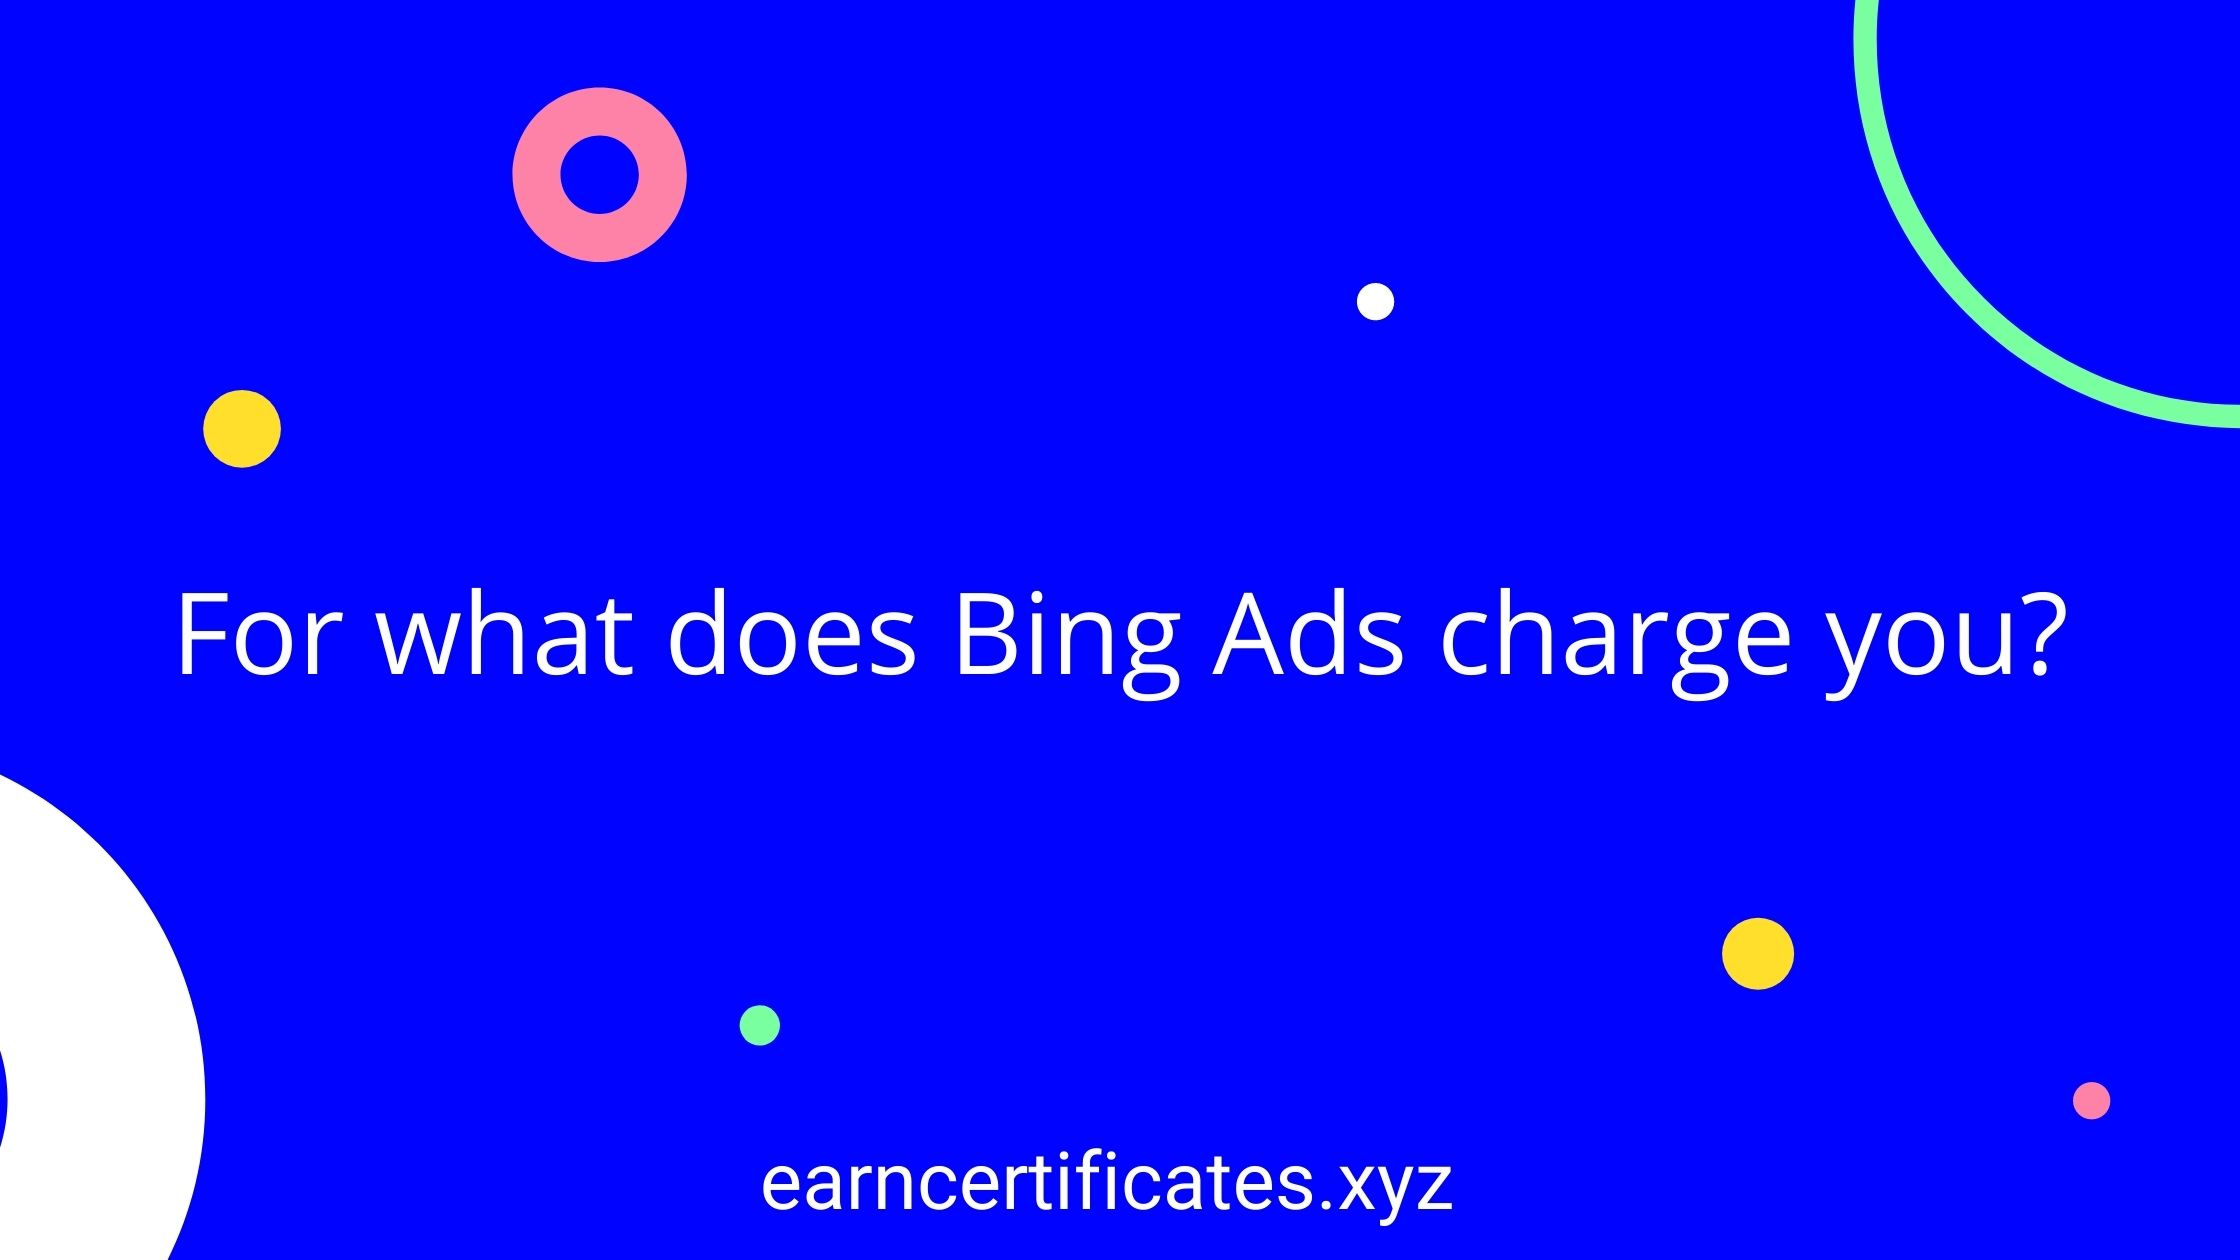 For what does Bing Ads charge you?